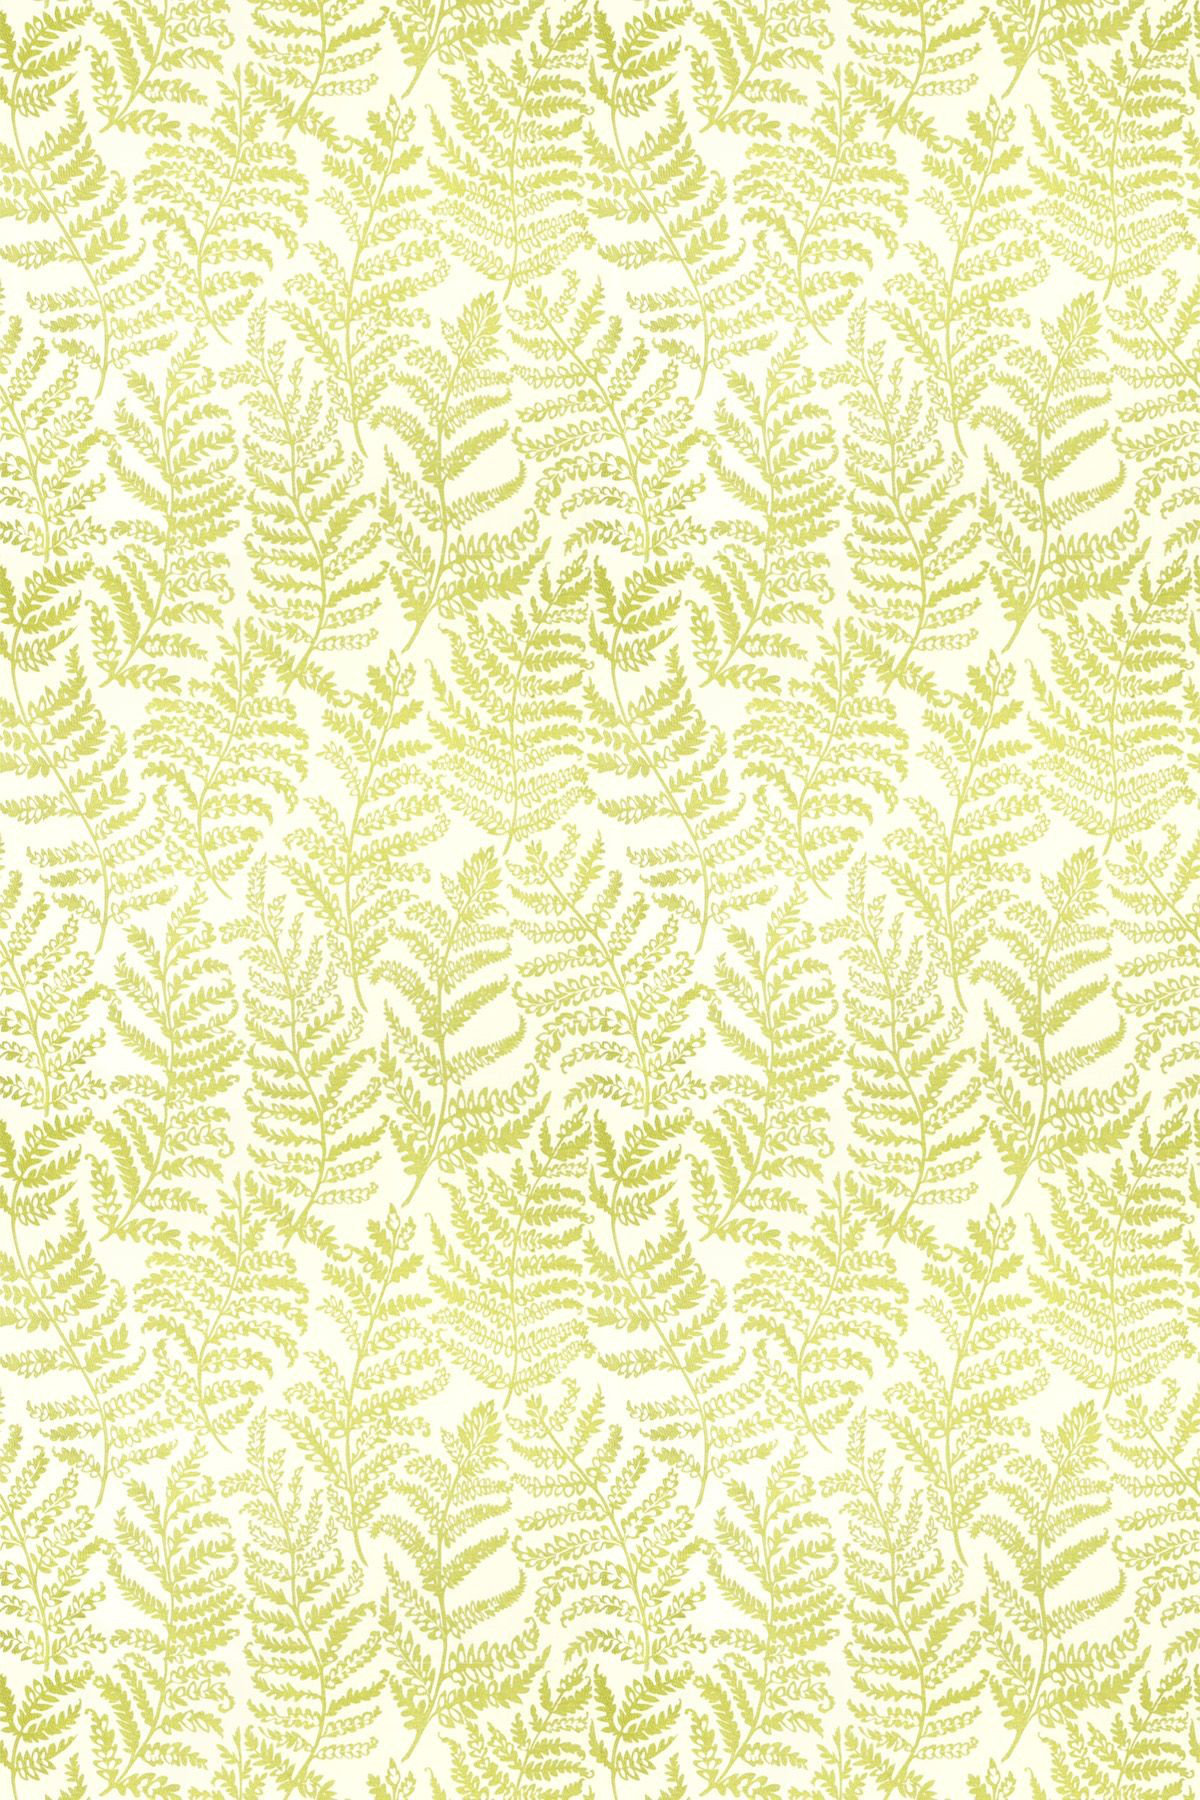 Image of Clarke & Clarke Fabric Wild Fern Citrus, F0488/02